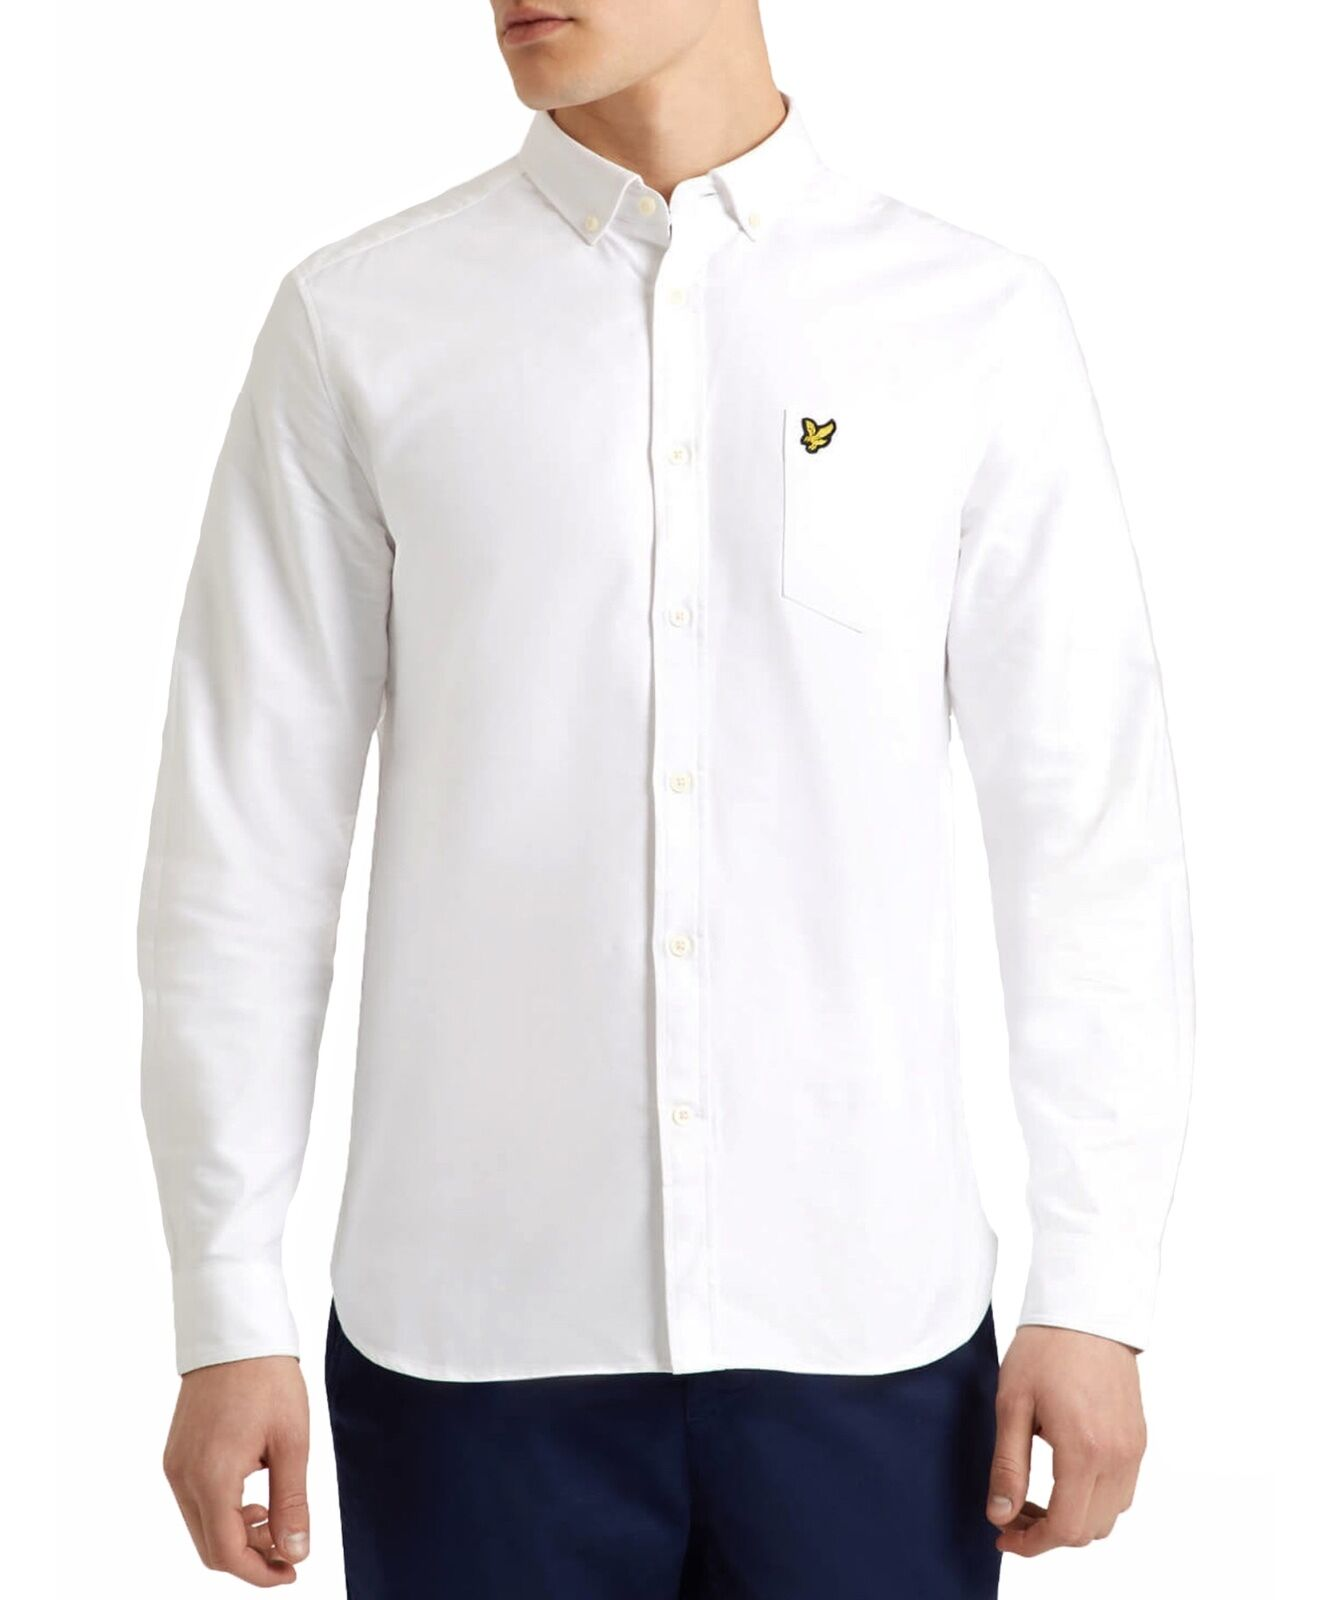 Lyle & Scott Cotton Oxford Shirt Regular Long Sleeve Button Down Collar White